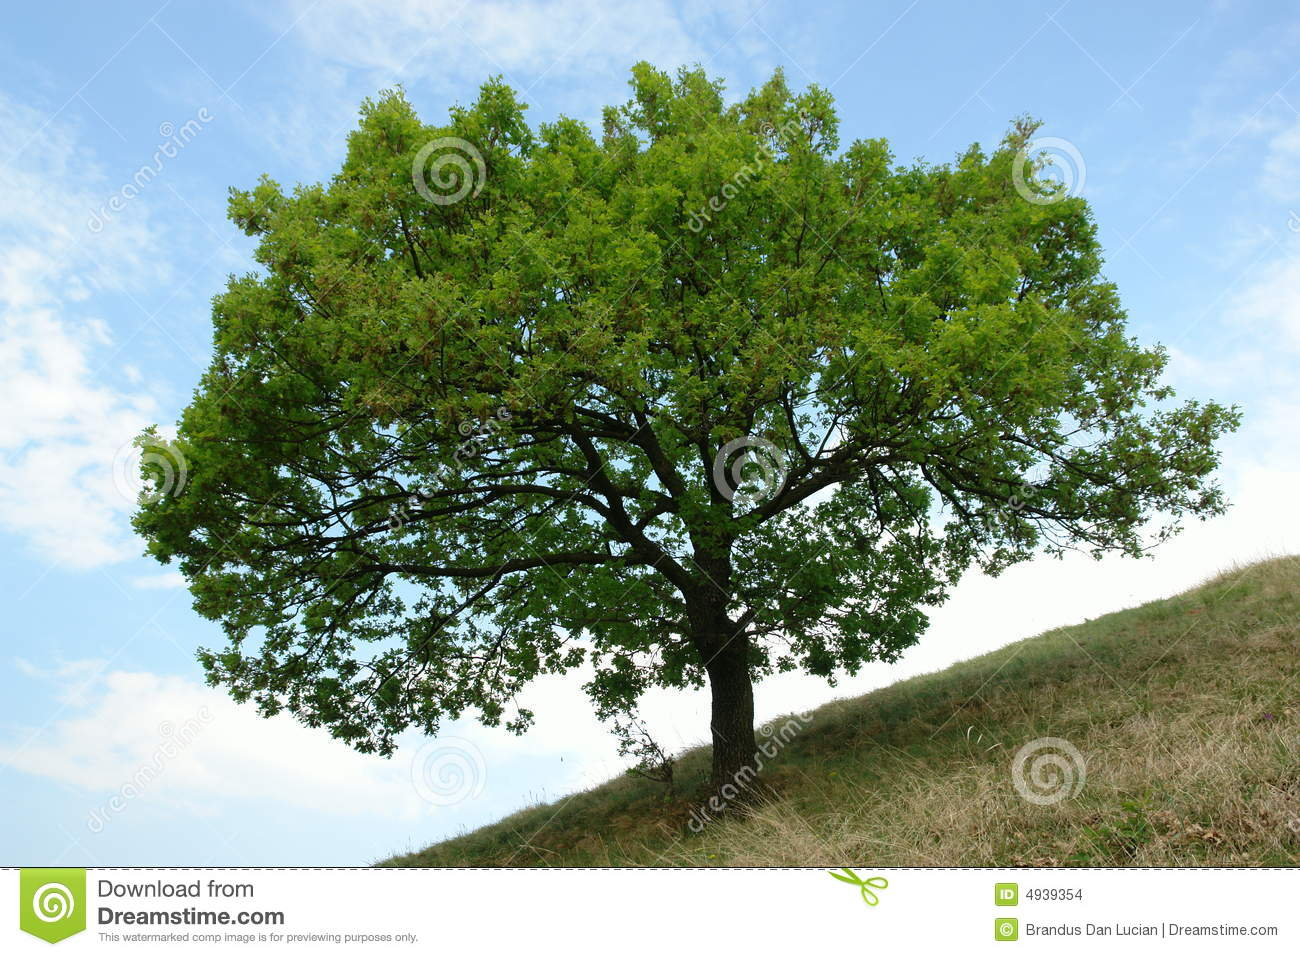 List of oldest trees